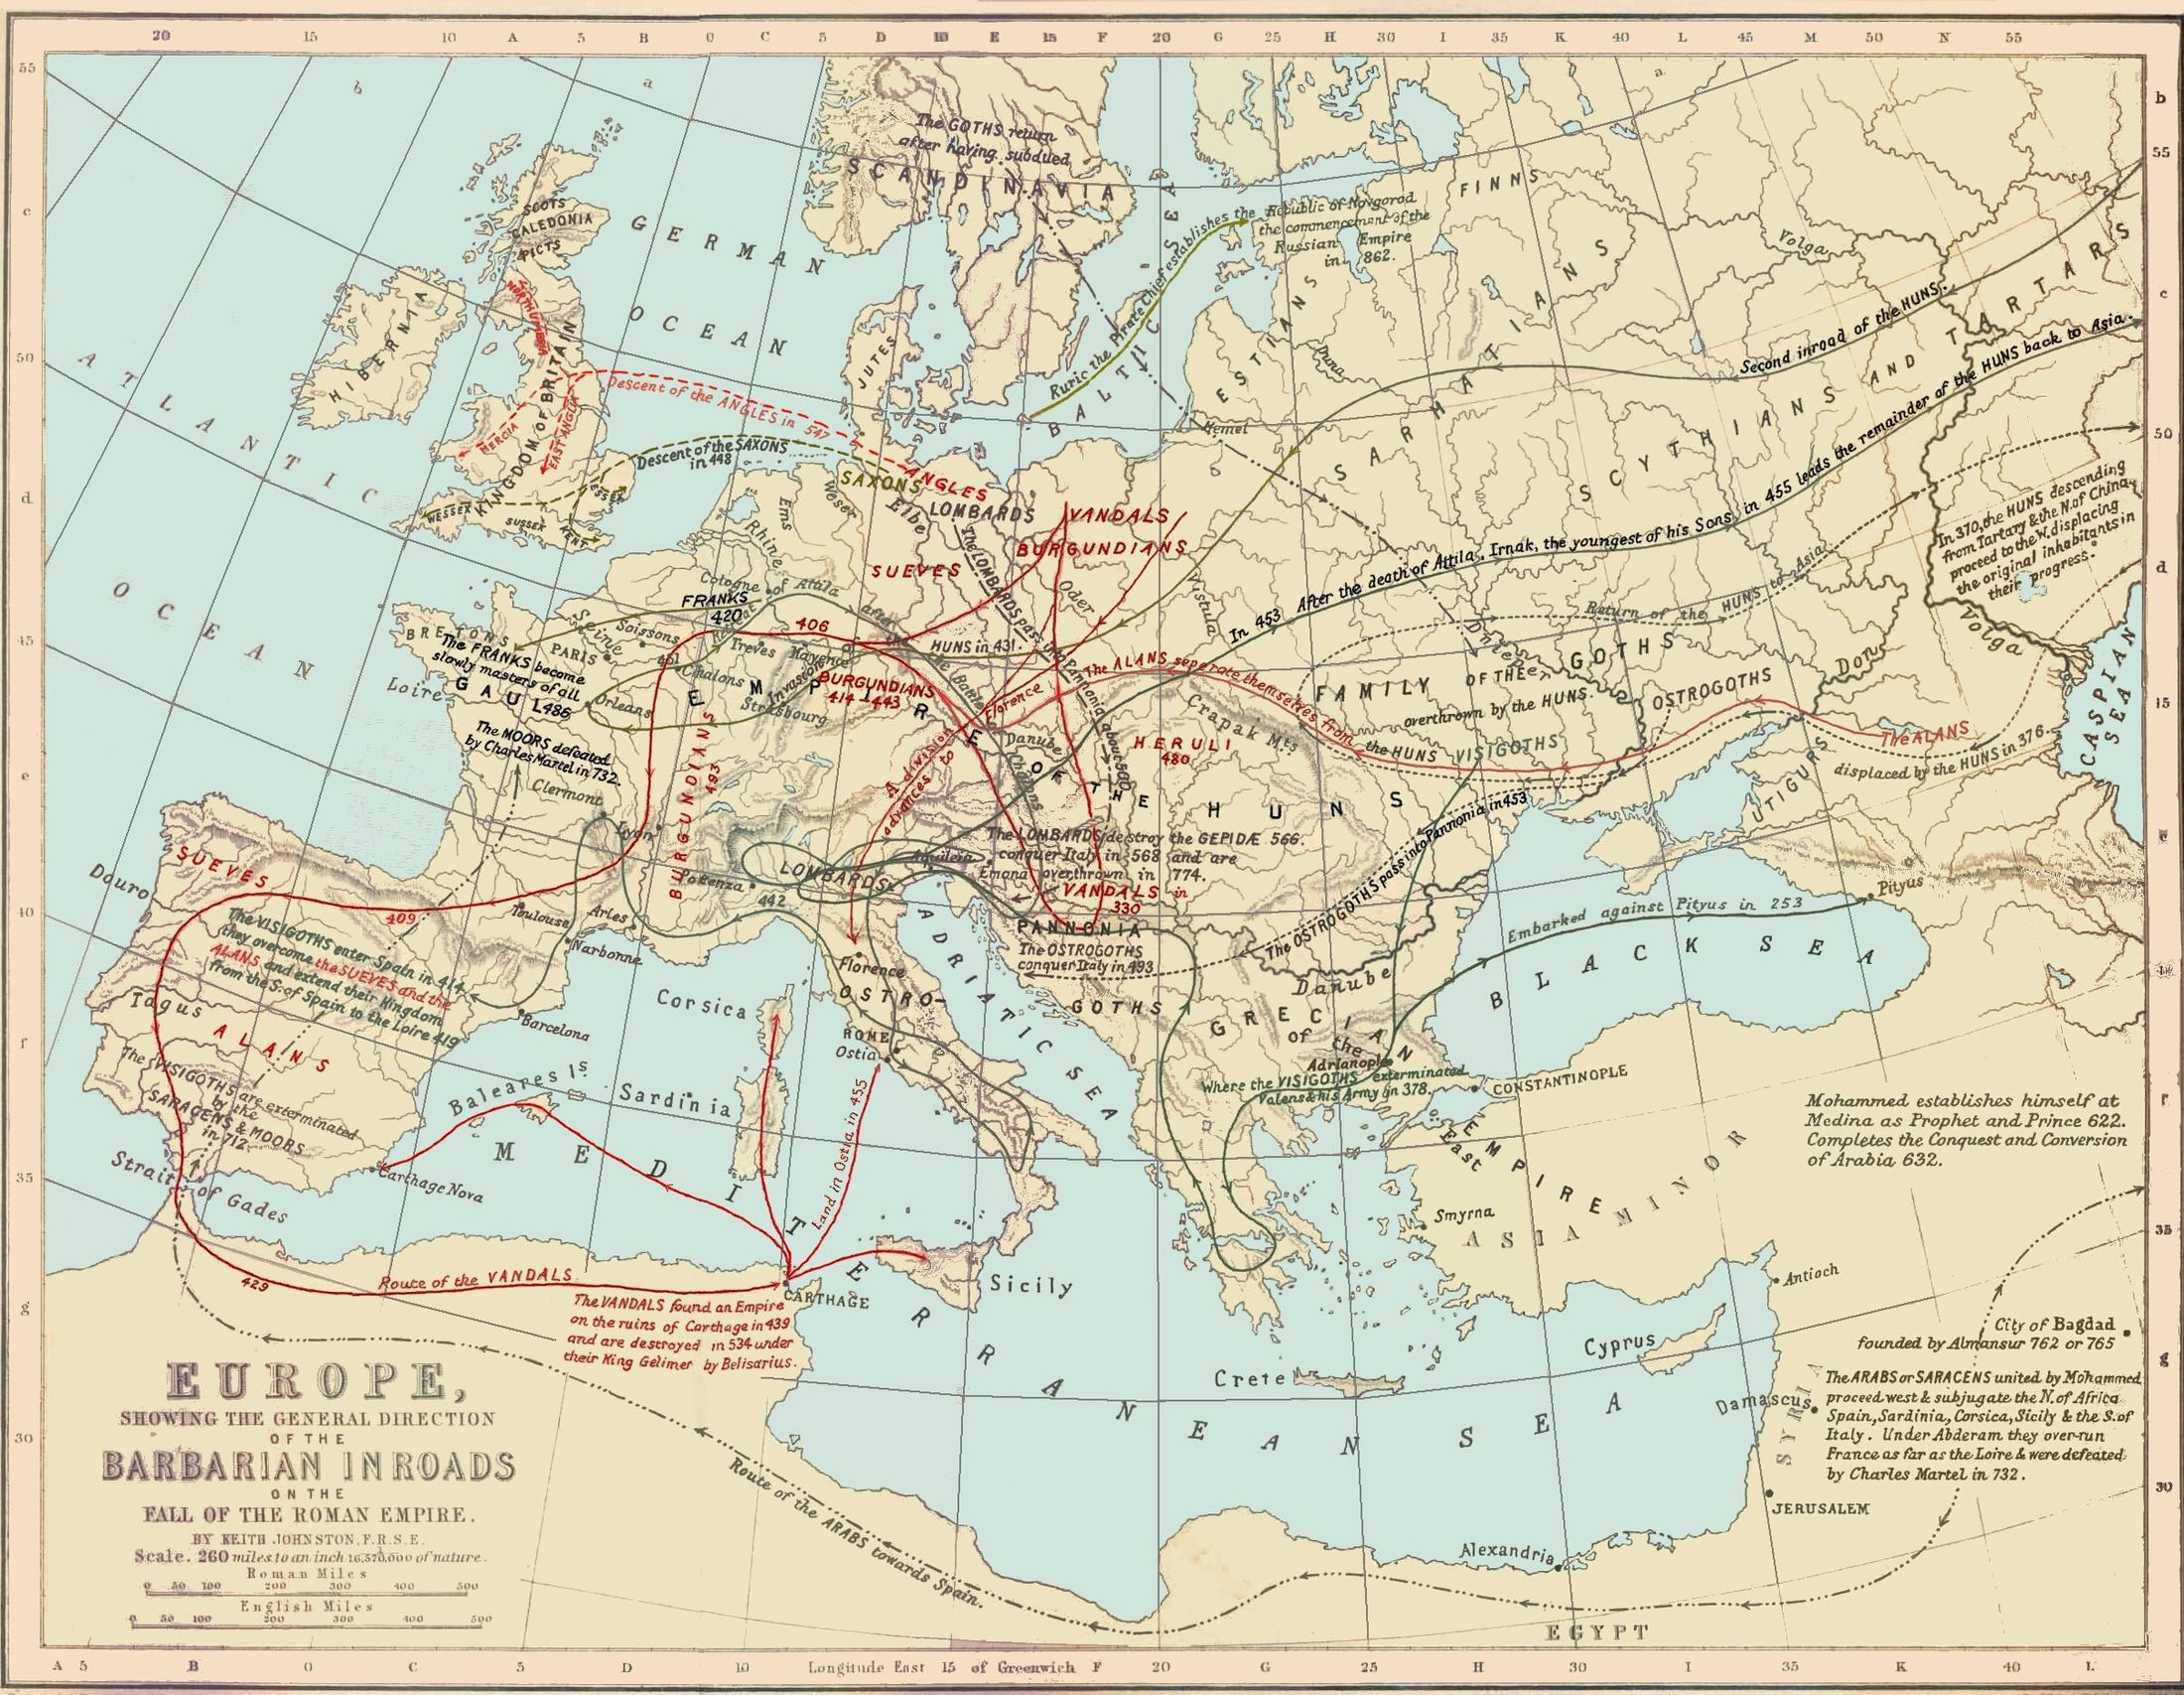 How does the byzantine empire's contributions in terms of sociology,philosphy and politics influenced us today?